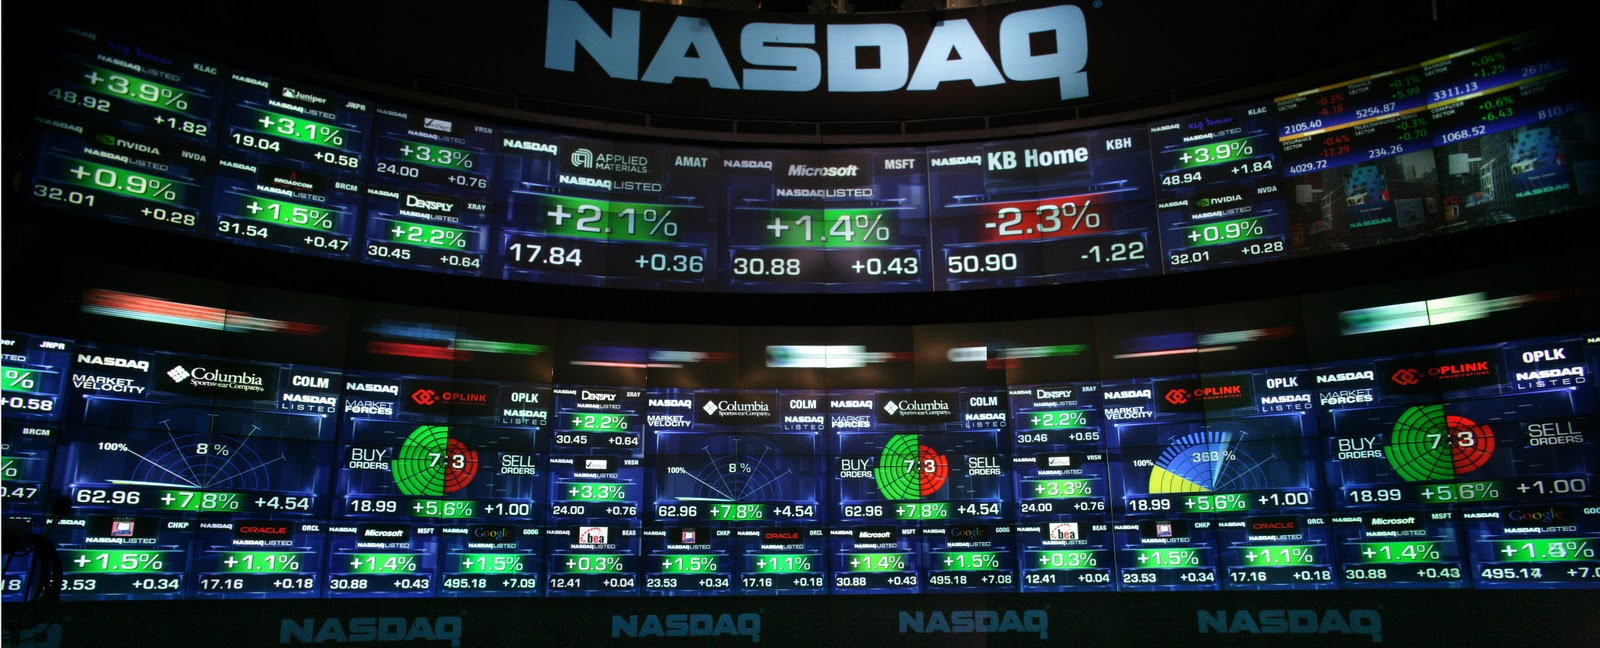 Make money by investing in the NASDAQ TLRY stocks